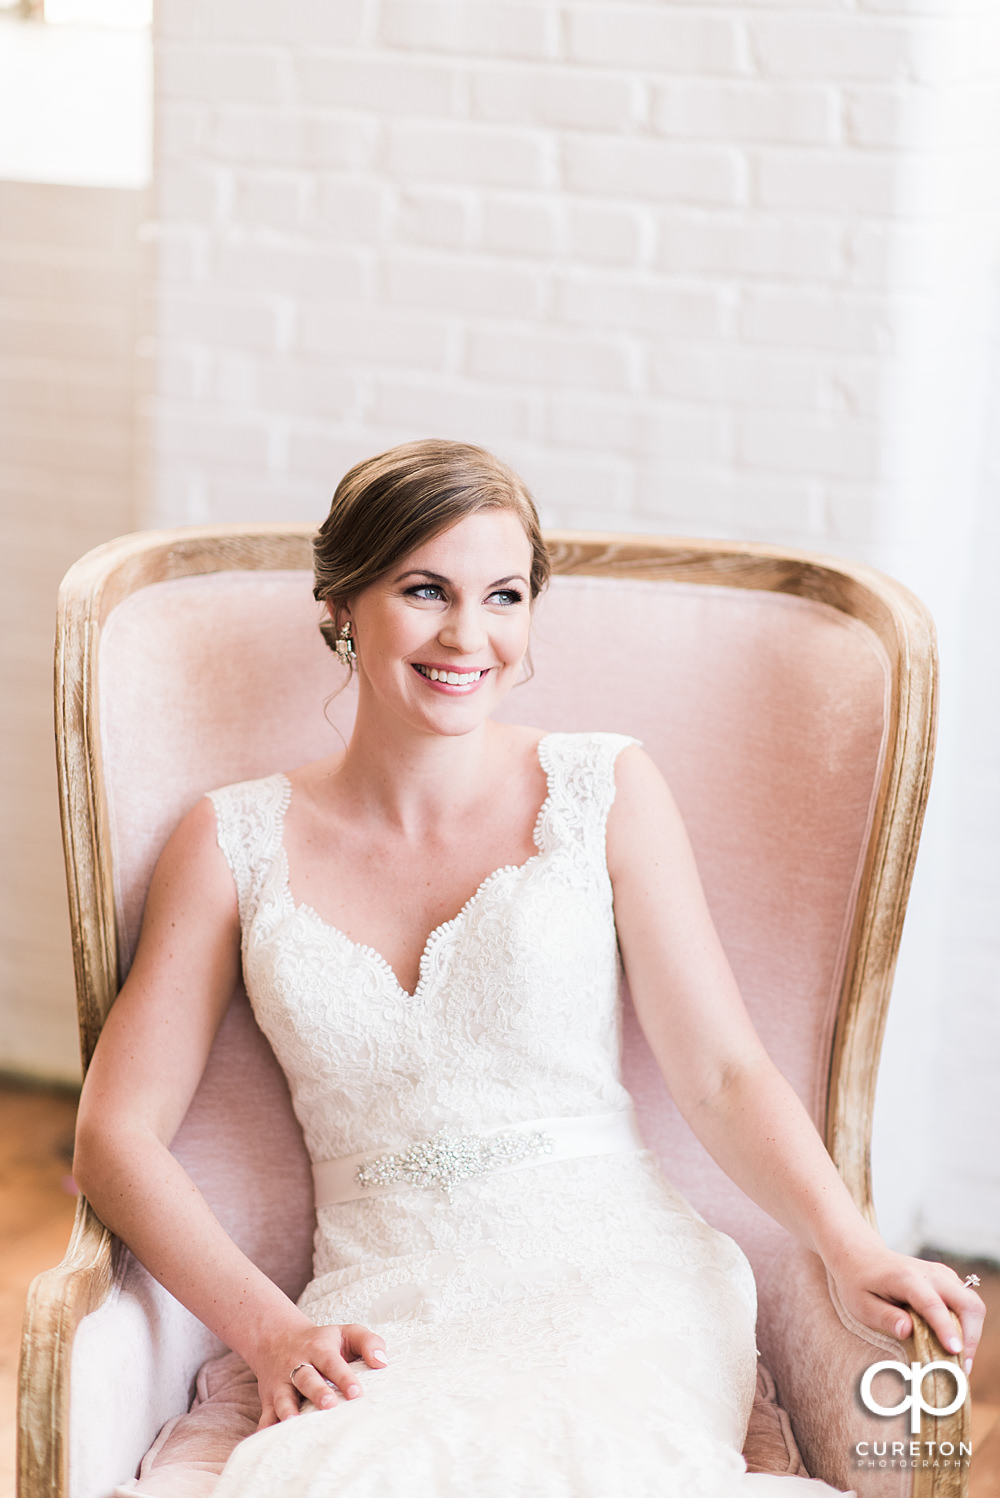 Bride laughing during her bridal session.